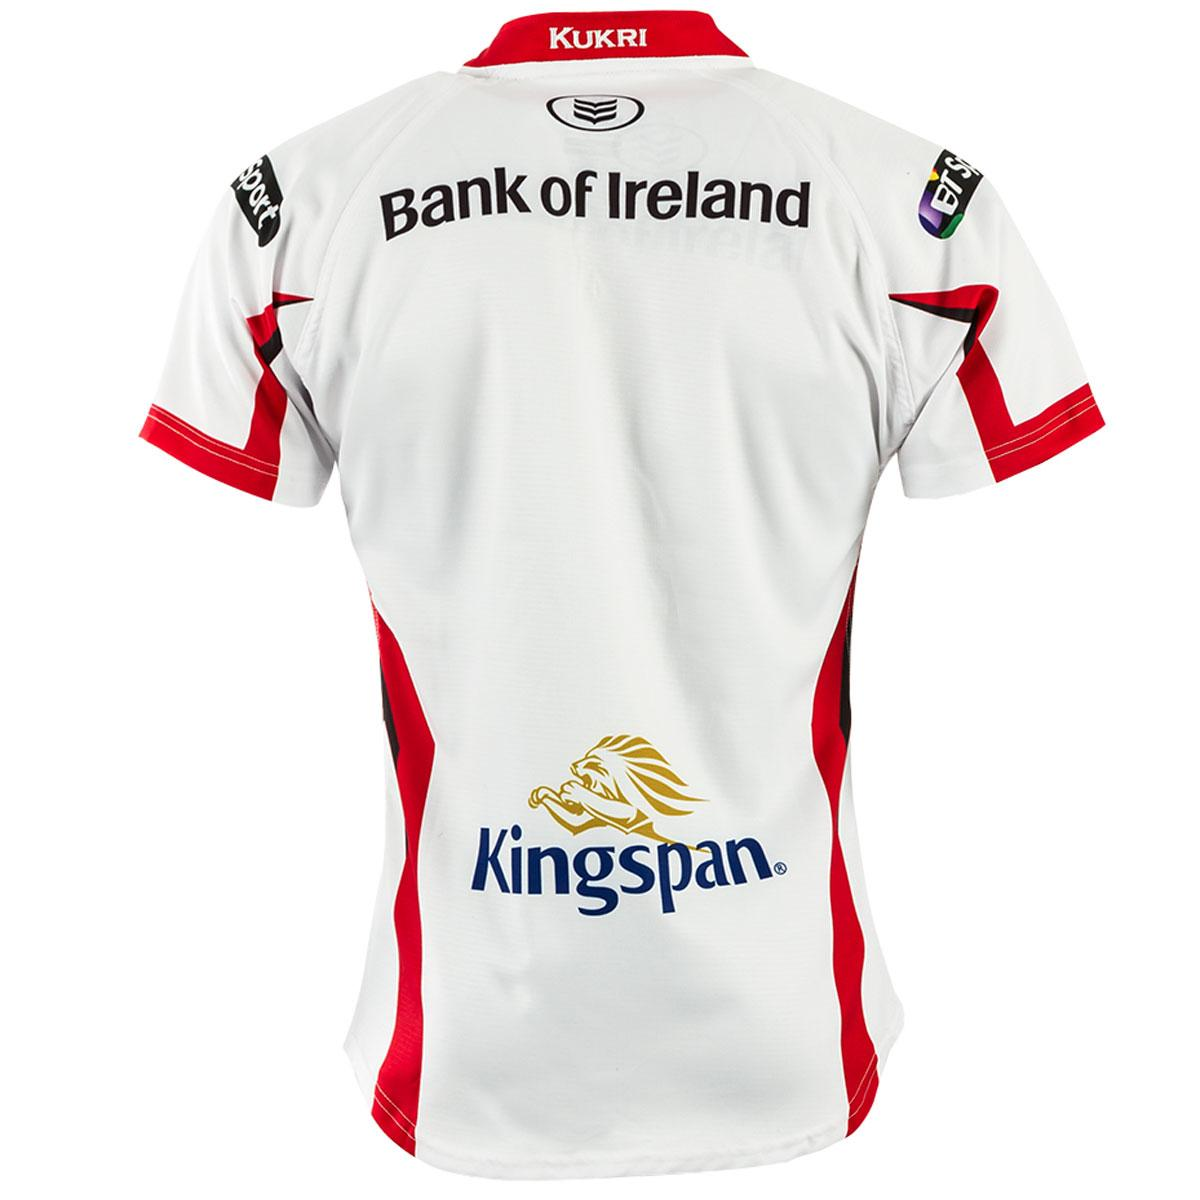 aaf1a07c0d8 Ulster Rugby 2014 15 Kukri Home   Alternate Shirts – Rugby Shirt Watch